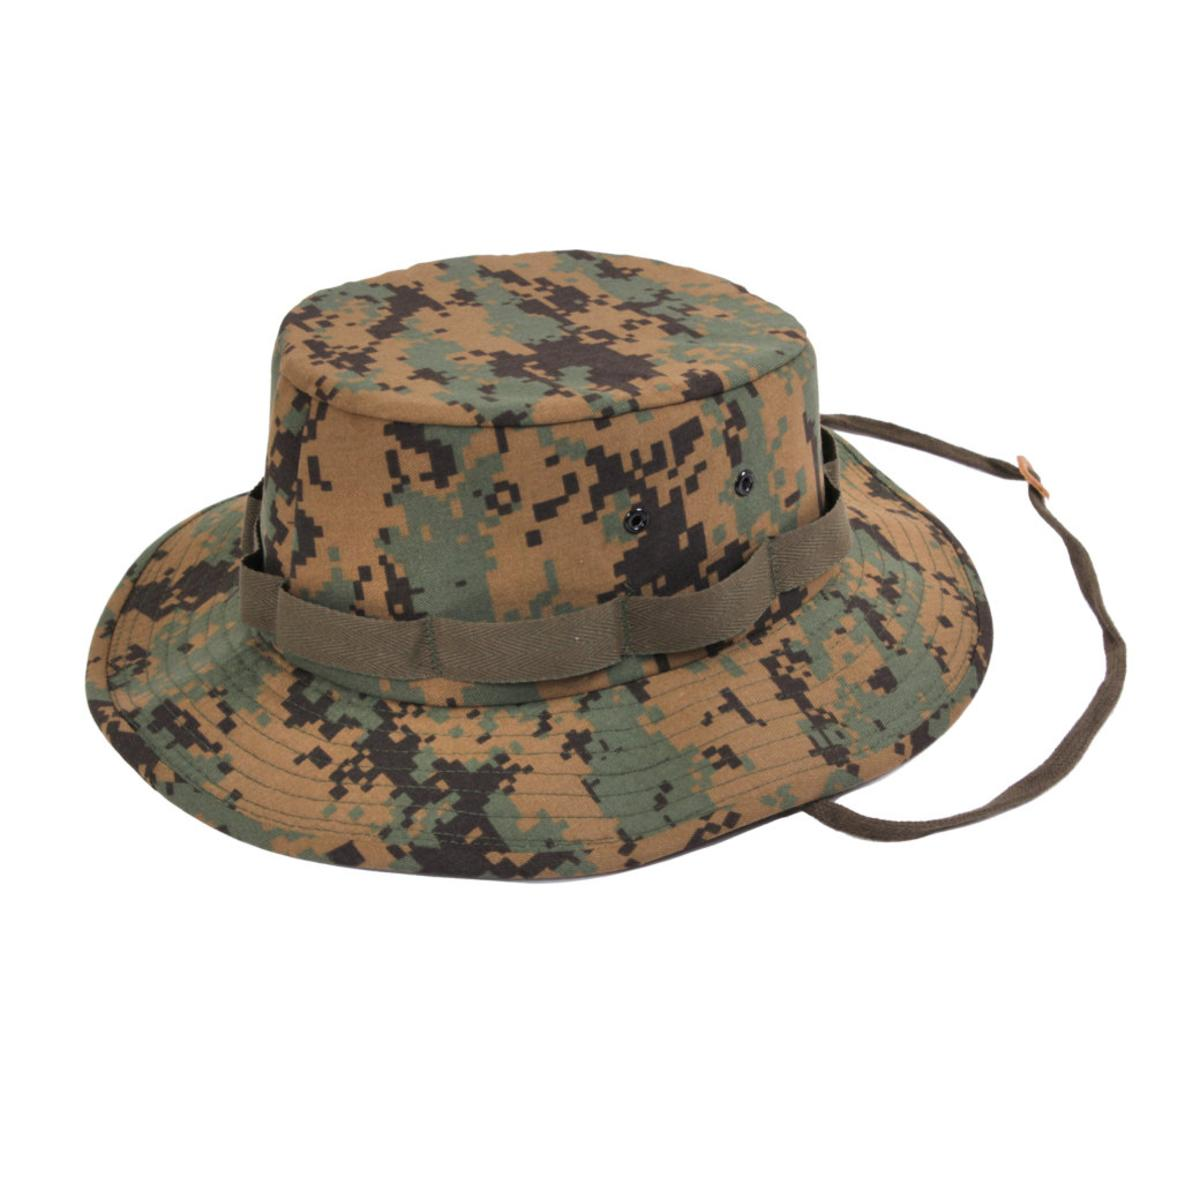 db8c39a0fe0 Details about Rothco Military Style Boonie Hat